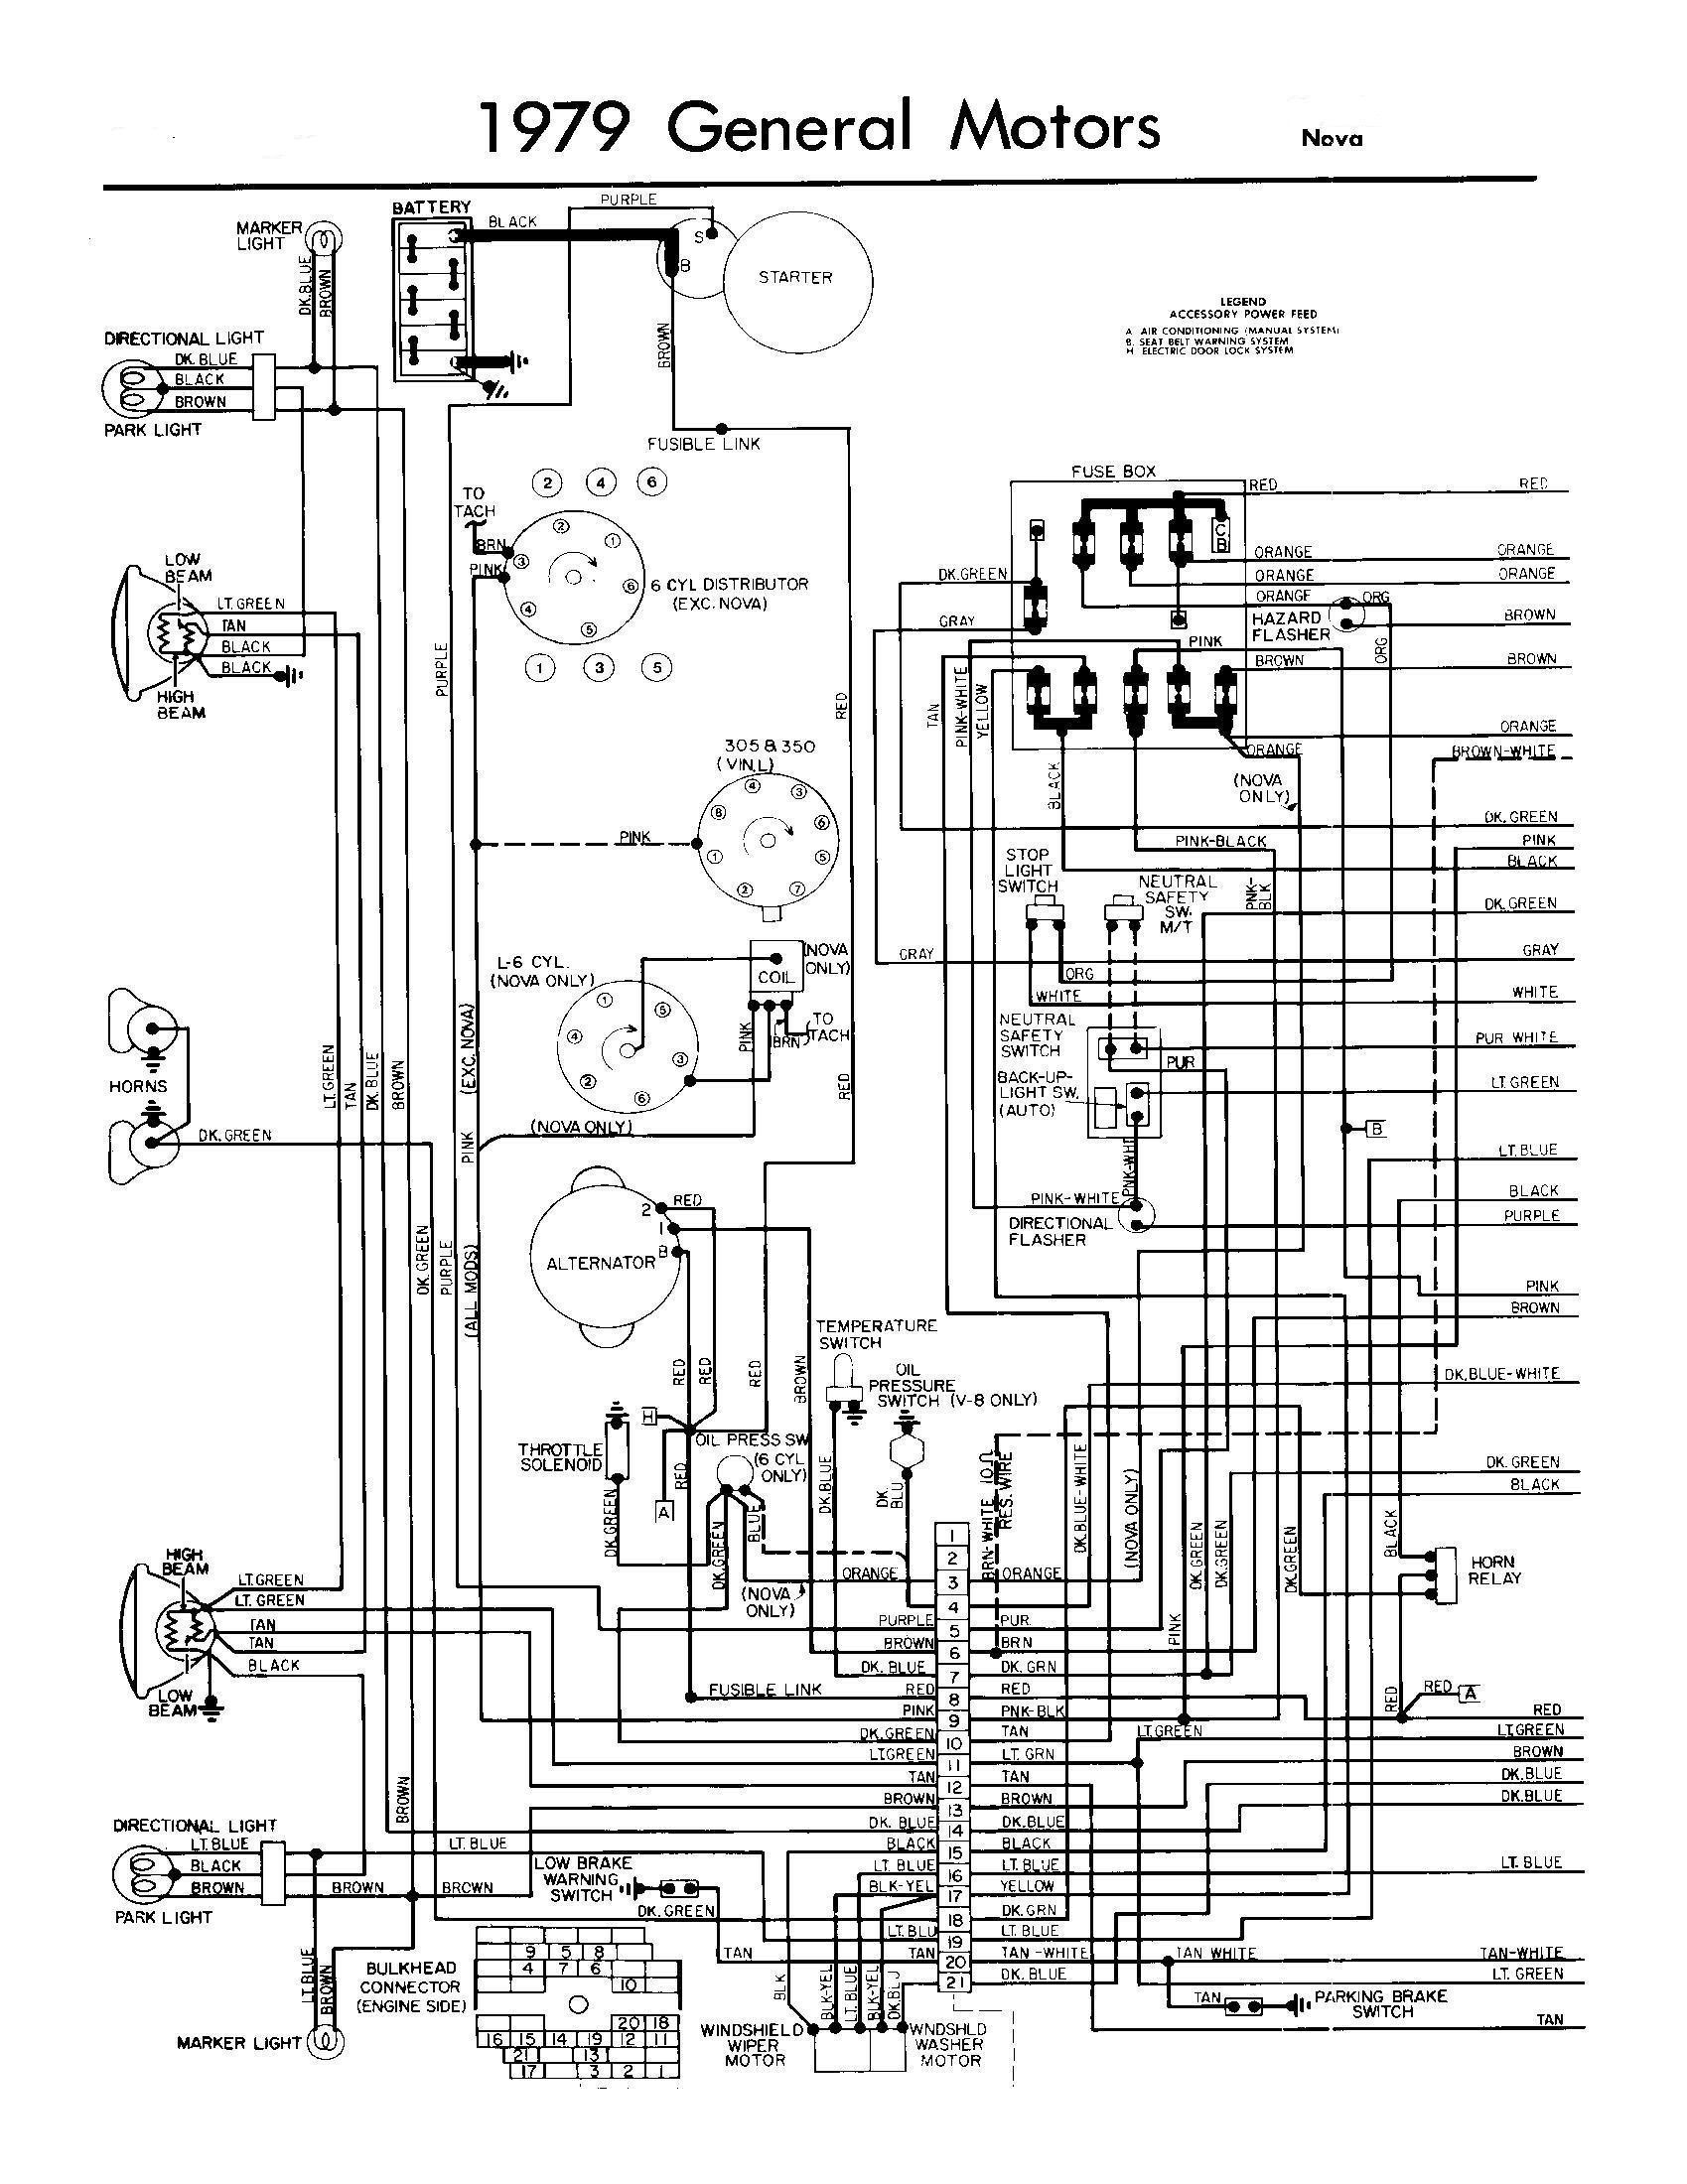 1982 chevy truck wiring diagram collection